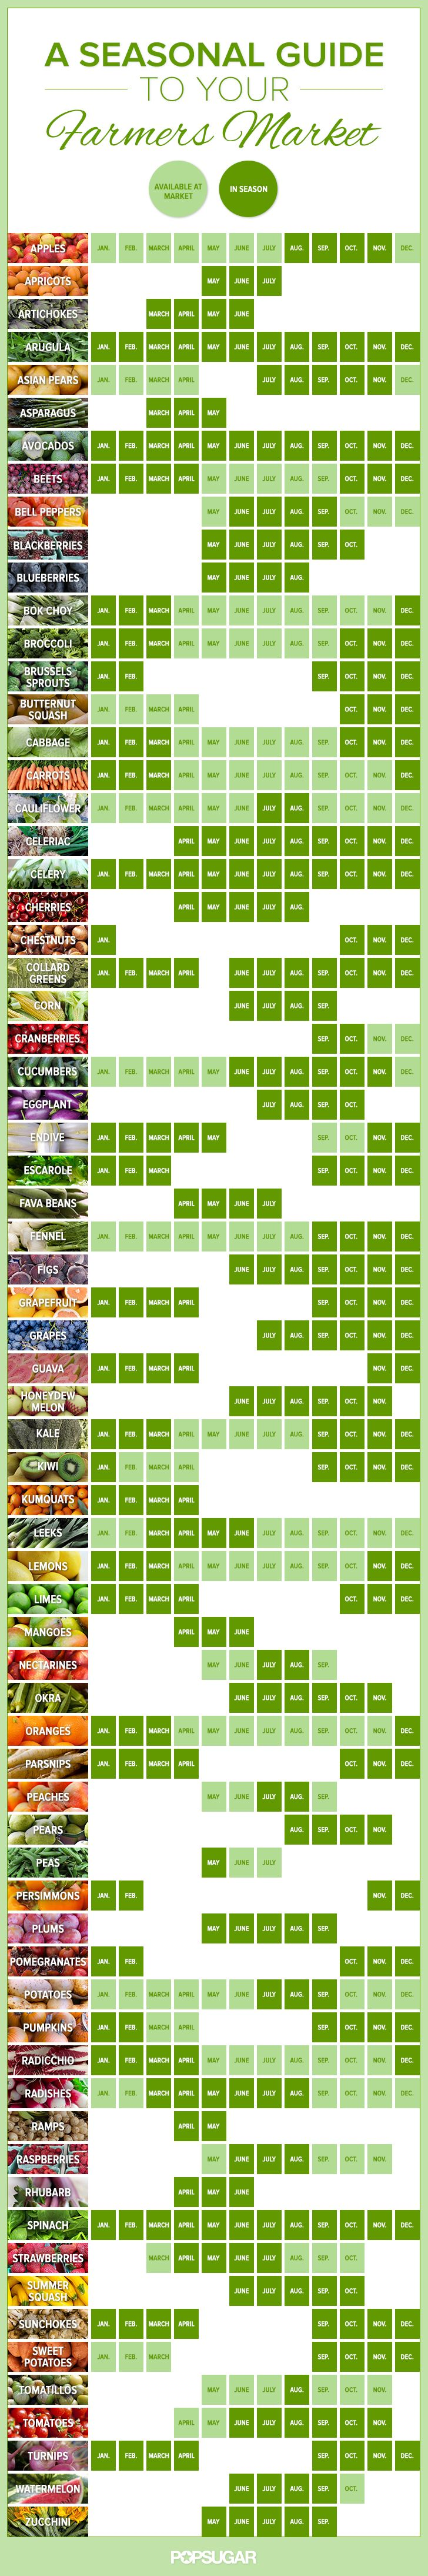 Great guide for those who wants to eat according to the seasons. Your Seasonal Farmers Market Guide